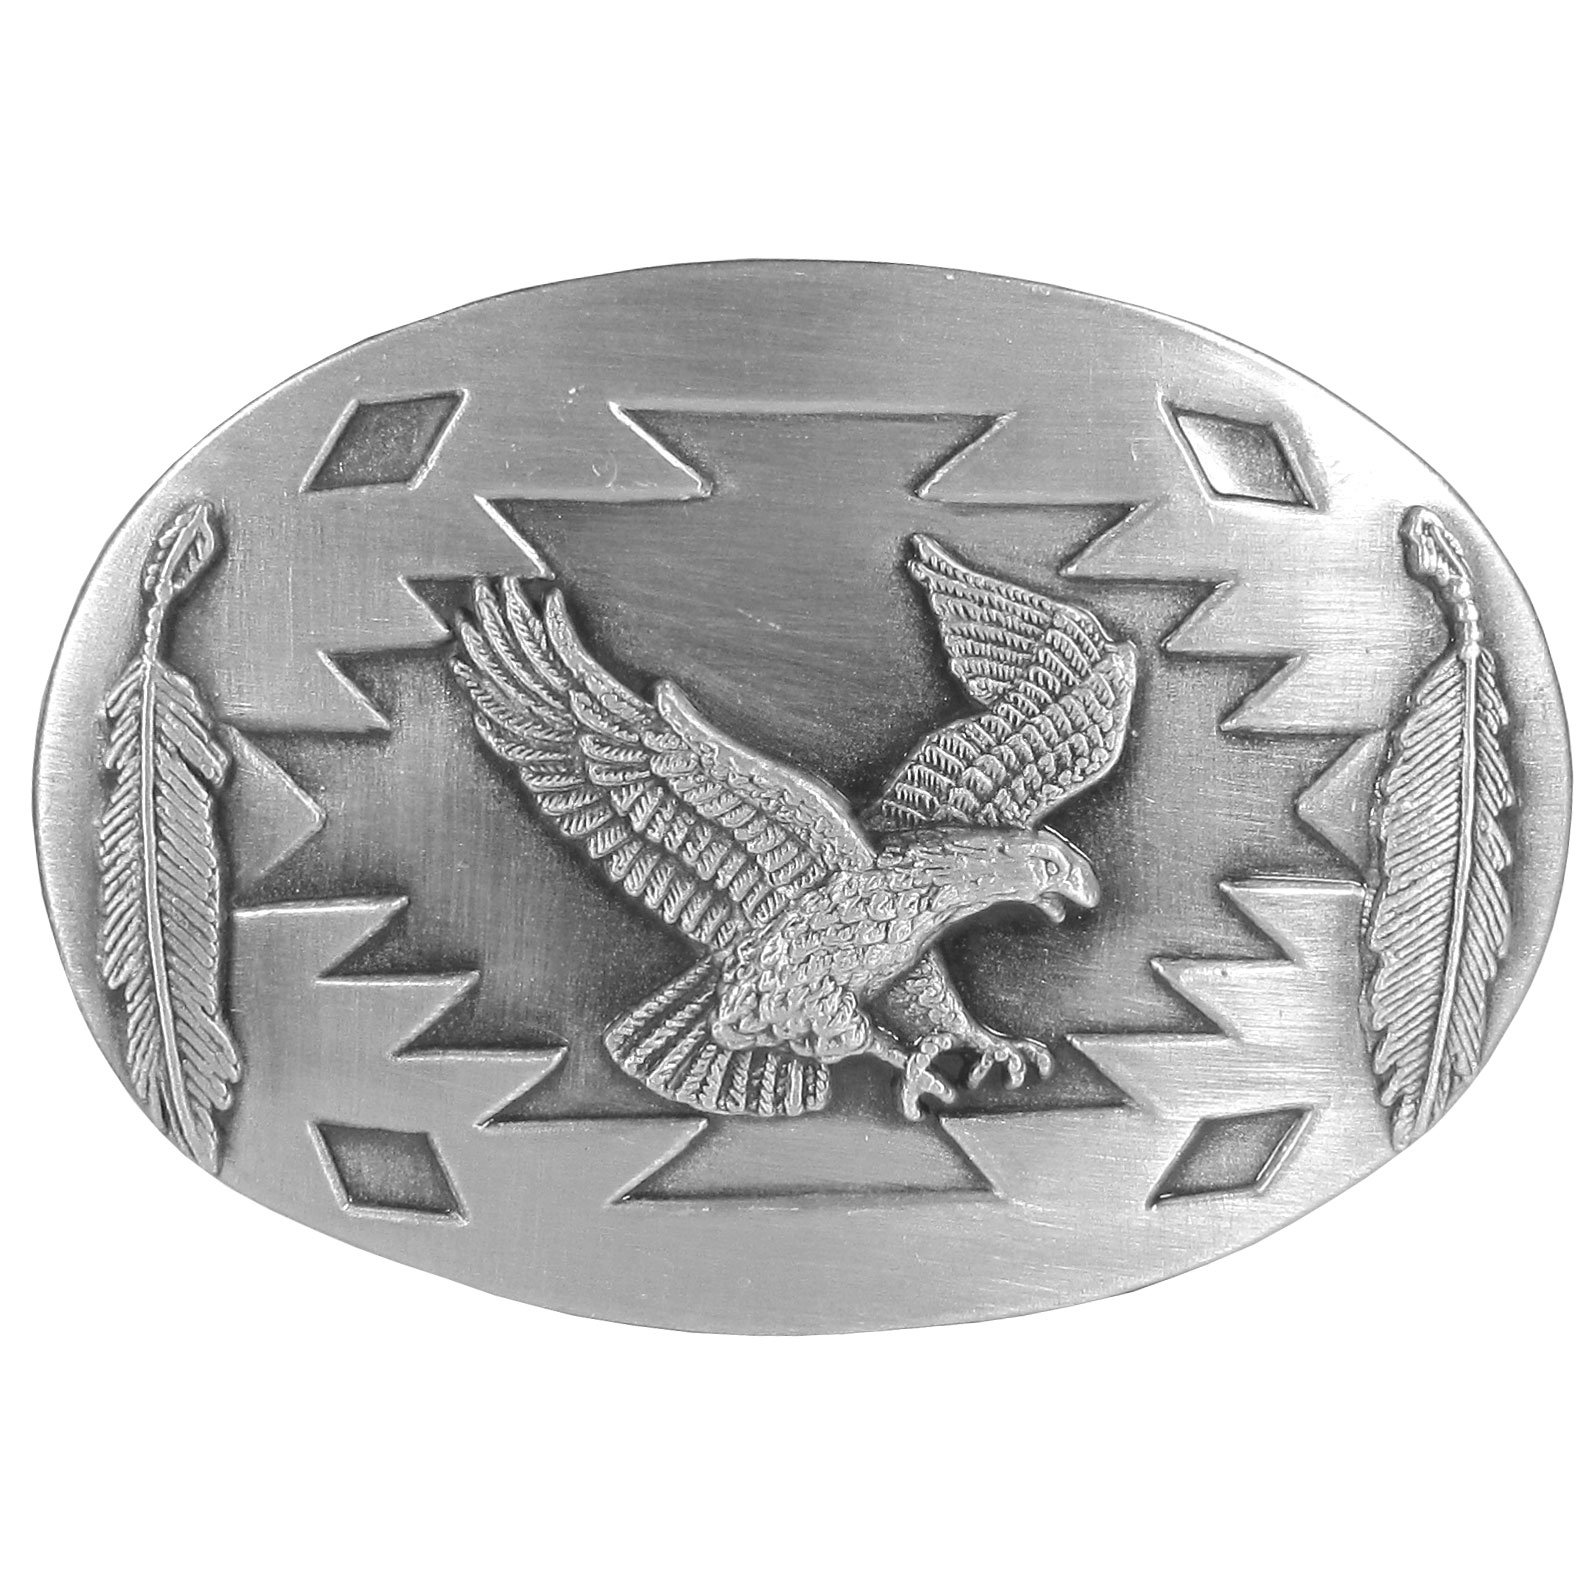 Flying Eagle with Feathers  Antiqued Belt Buckle - Finely sculpted and intricately designed belt buckle. Our unique designs often become collector's items.